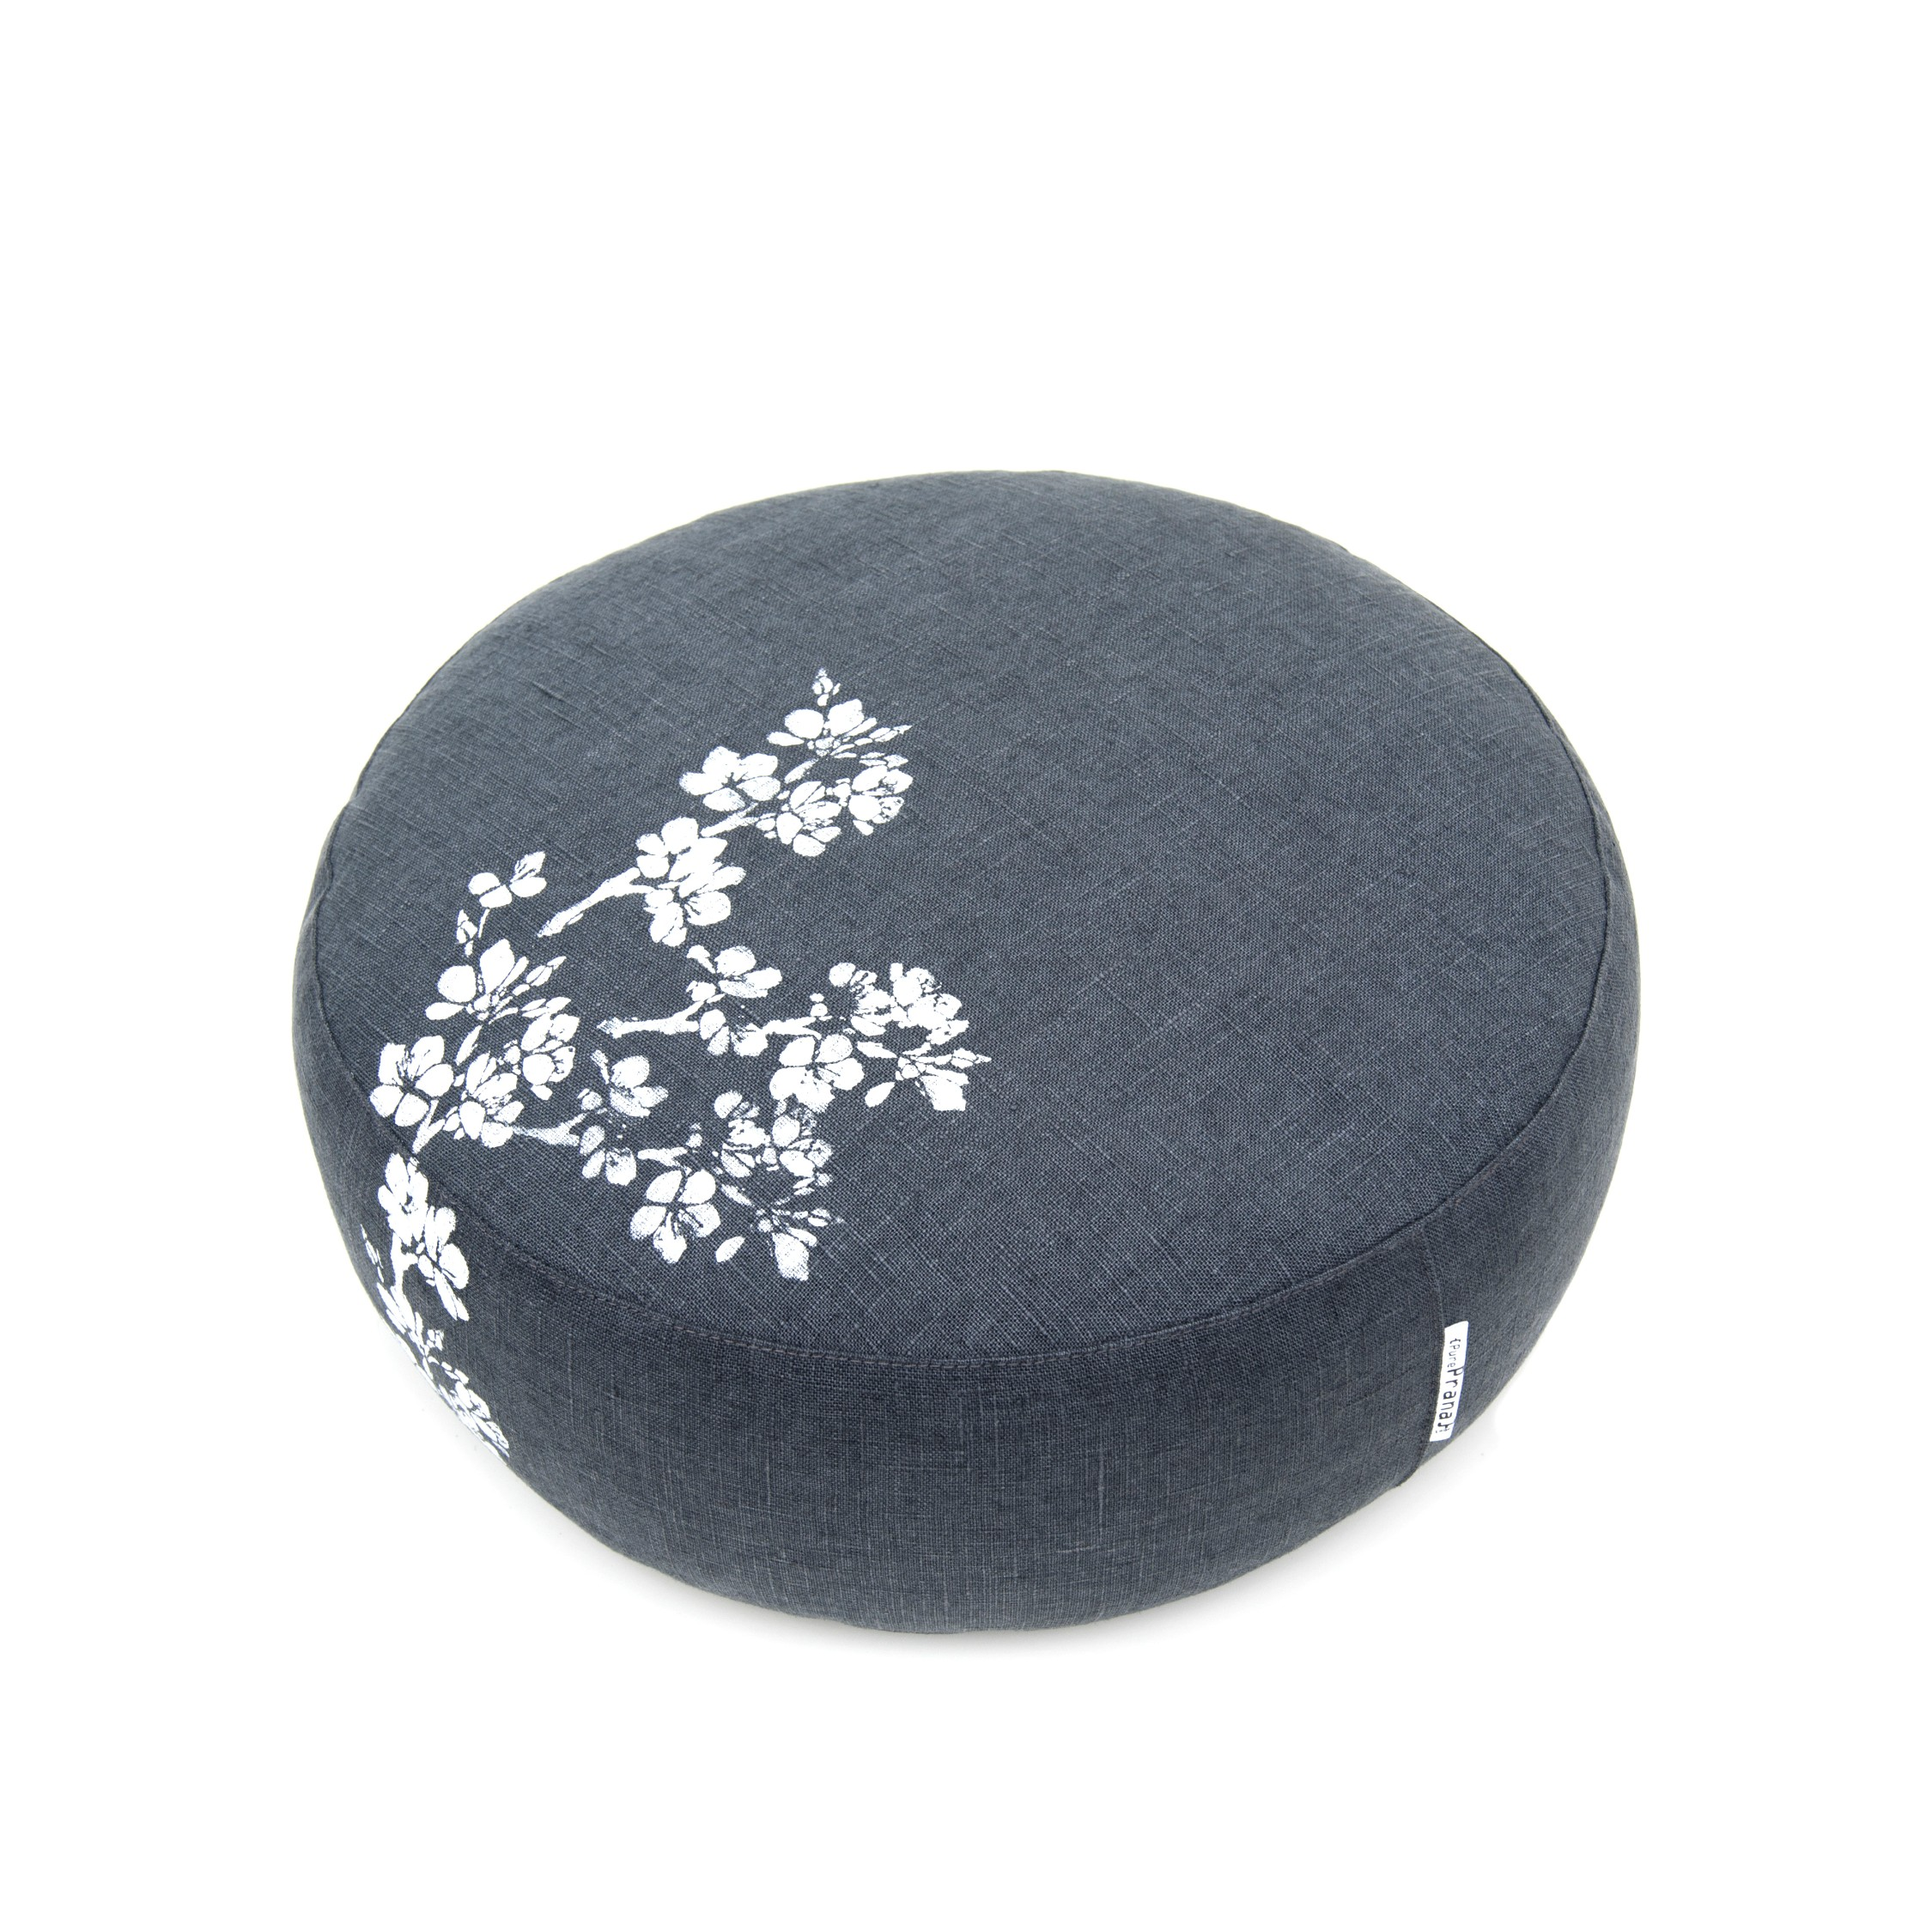 An aerial view of the Cherry Blossom meditation cushion by Pure Prana Label